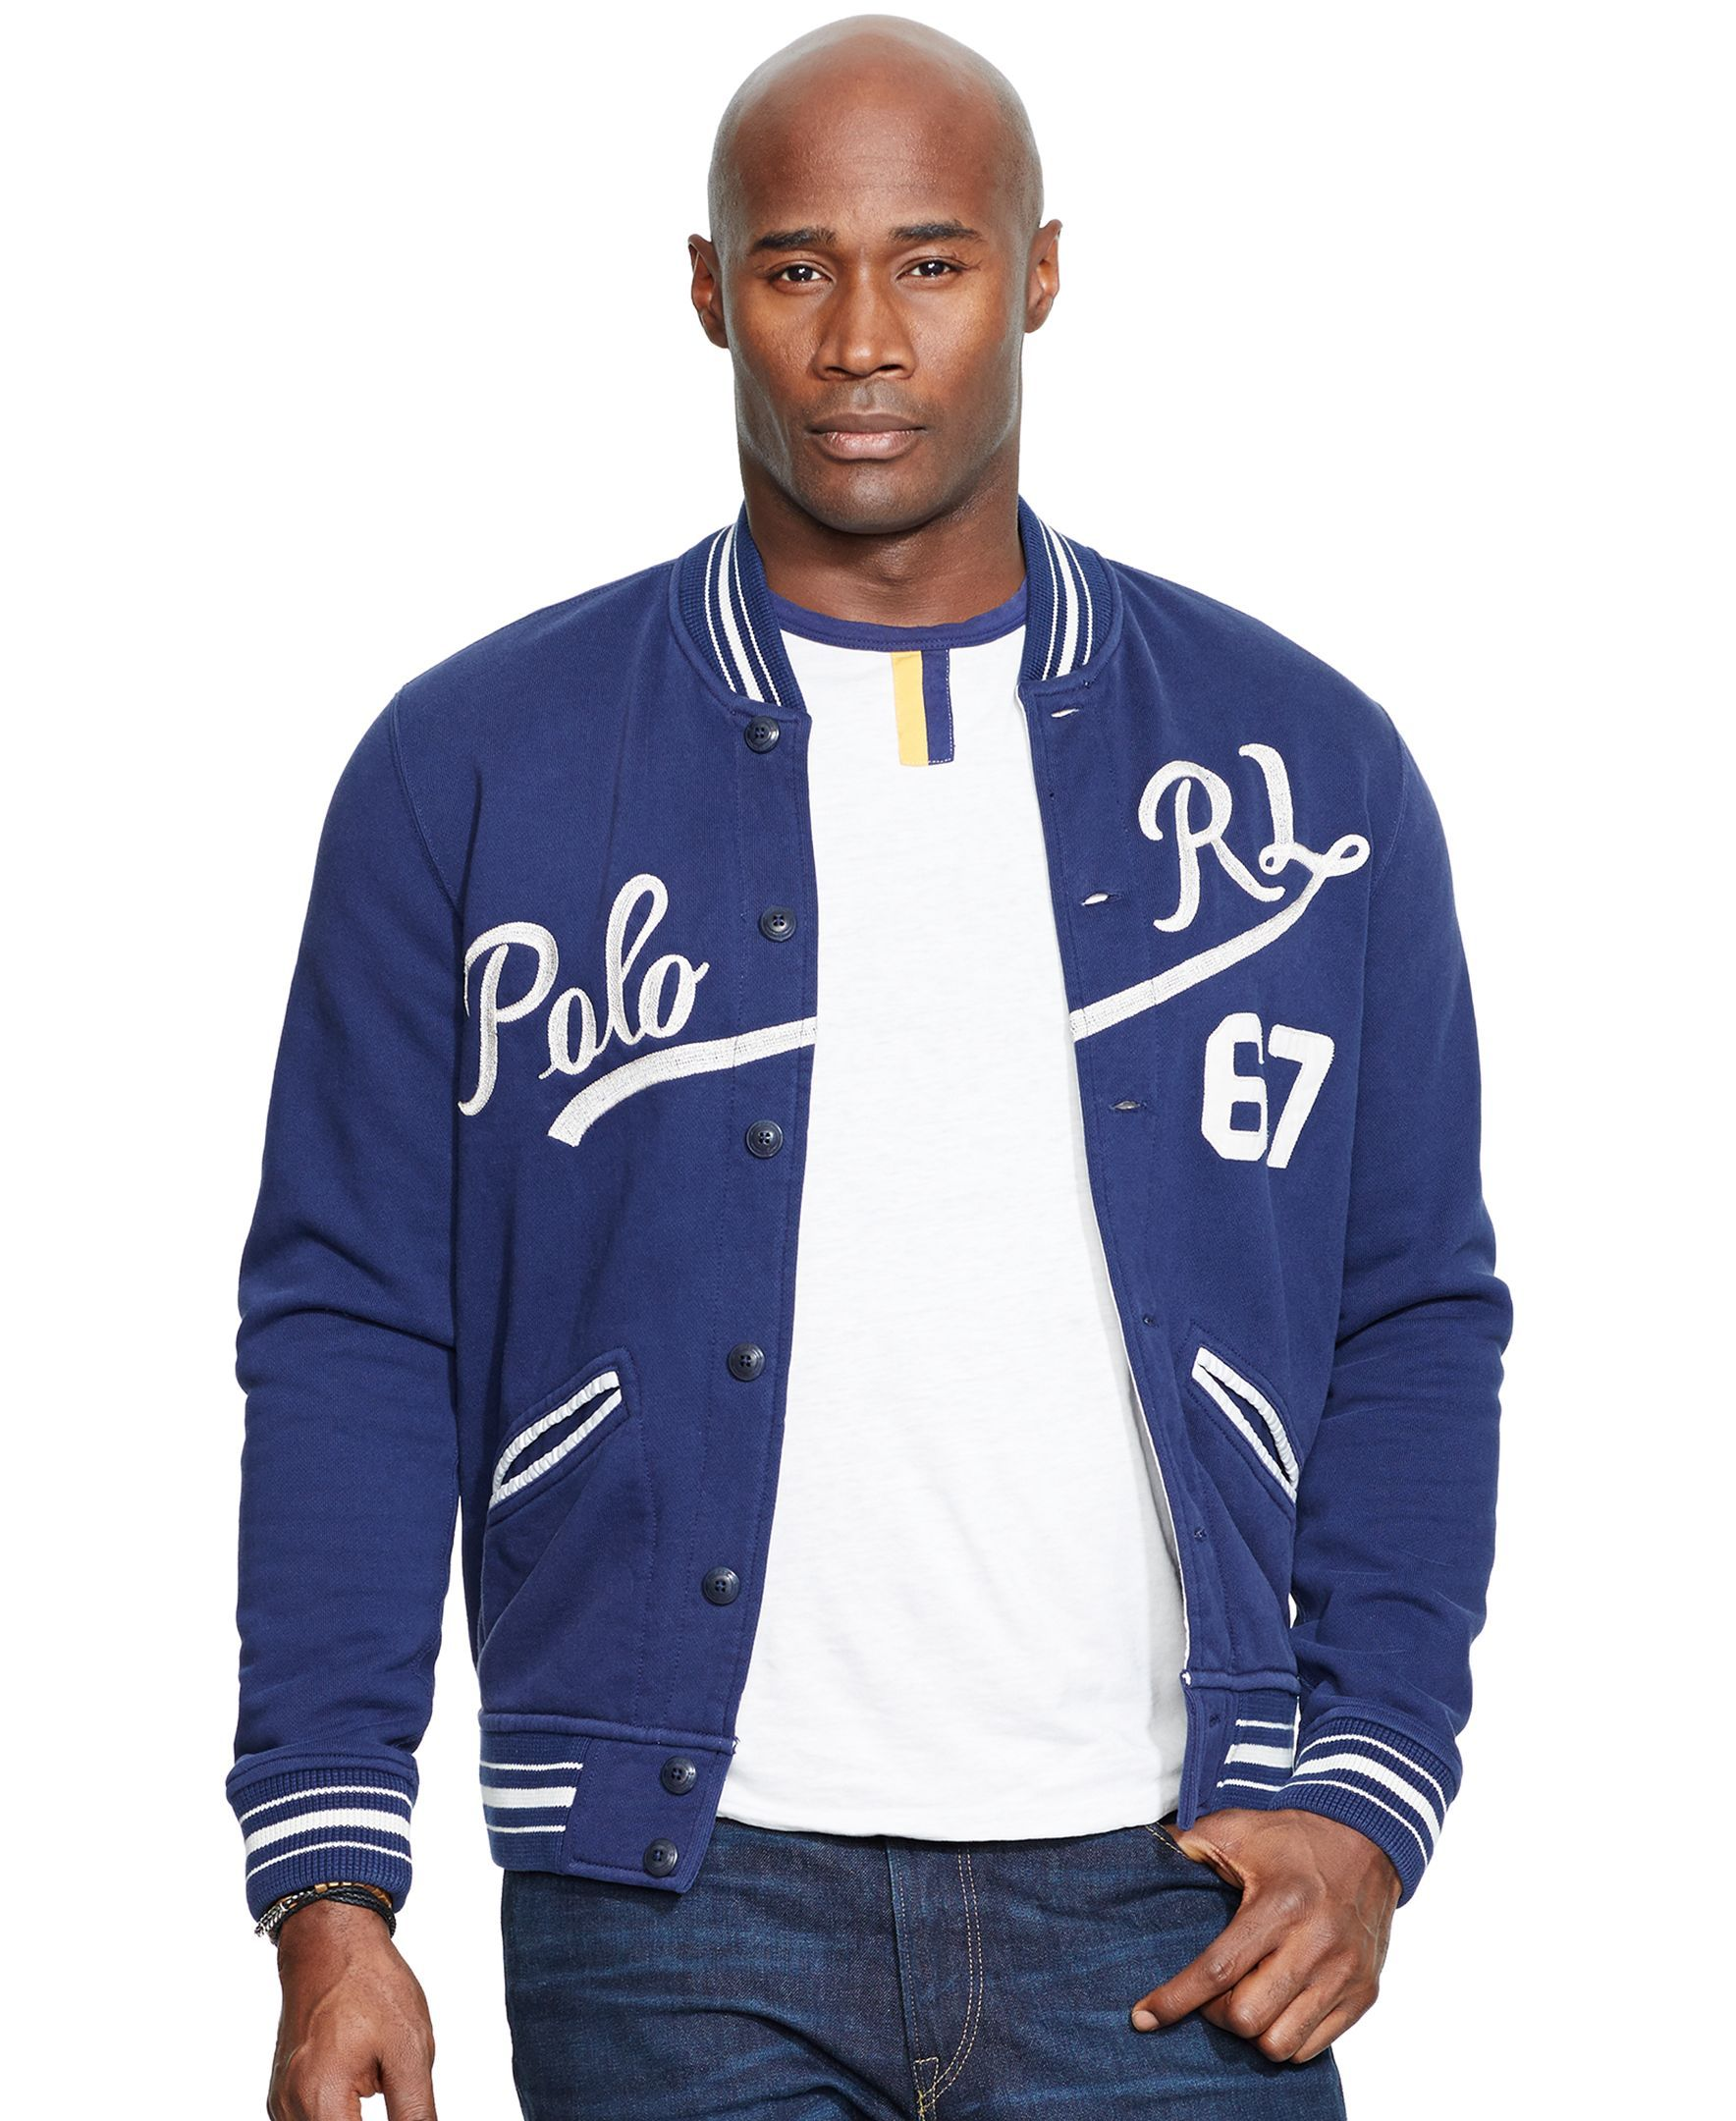 Polo Ralph Lauren Big & Tall Baseball Jacket